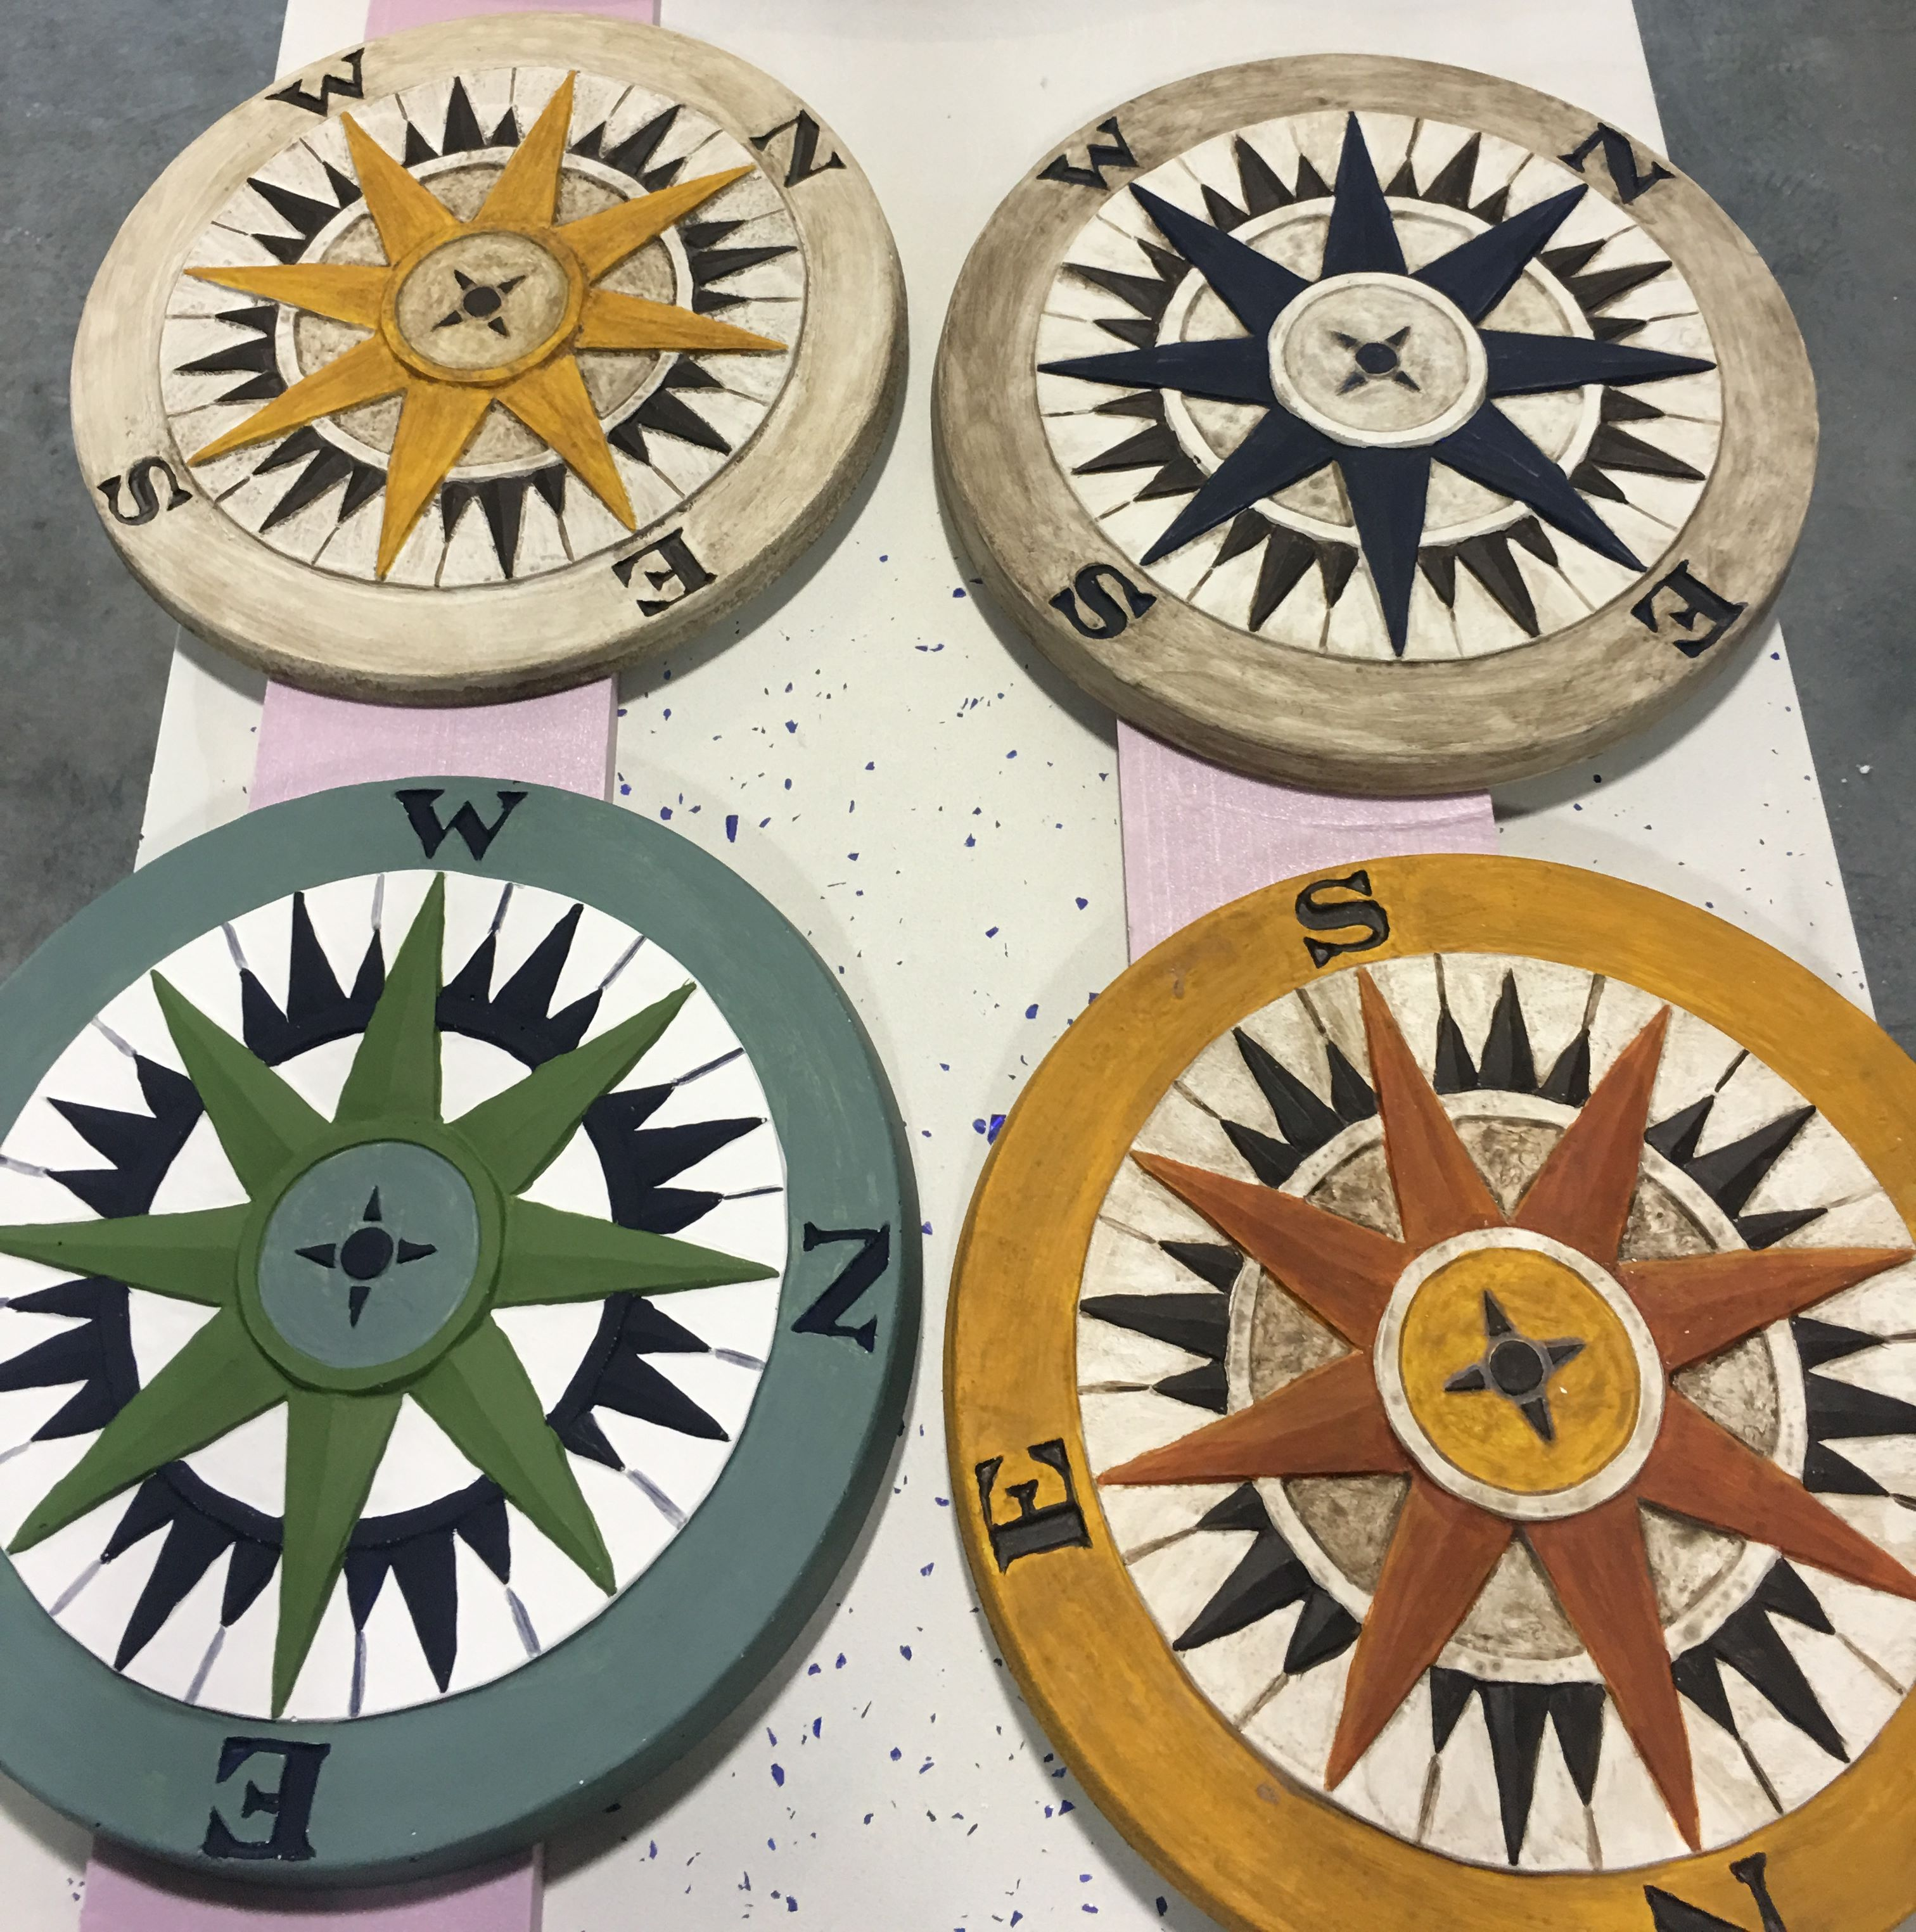 Compass Rose Stepping Stone Mold Fishstone Concrete